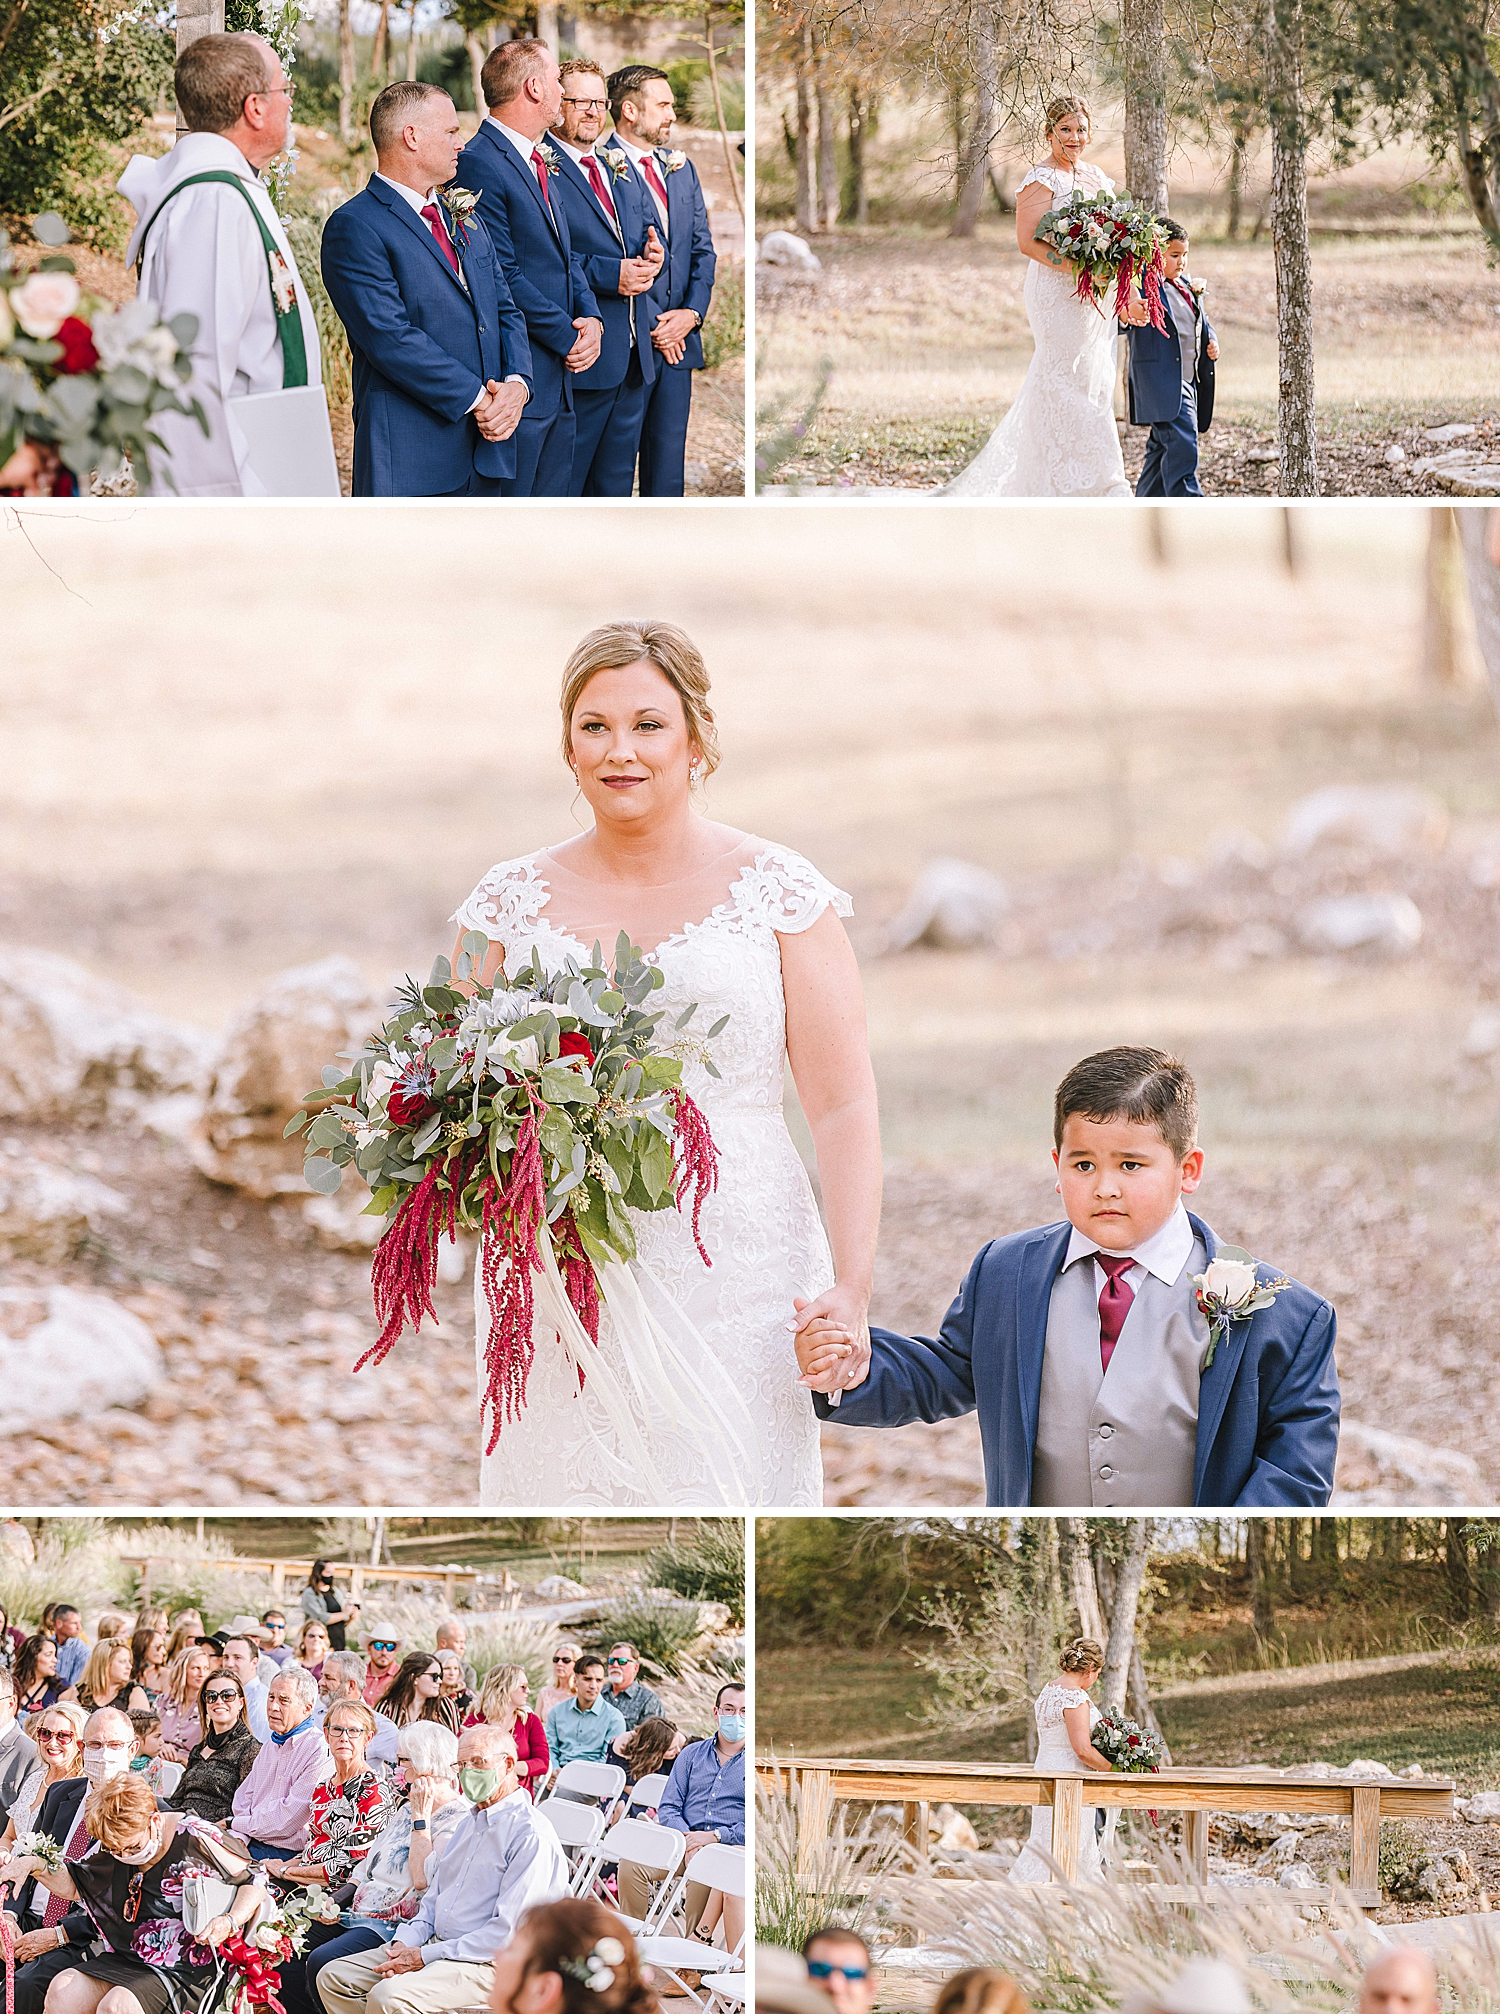 Geronimo-Oaks-Wedding-Venue-Seguin-Texas-Elegant-Navy-Burgundy-Wedding-Carly-Barton-Photography_0023.jpg